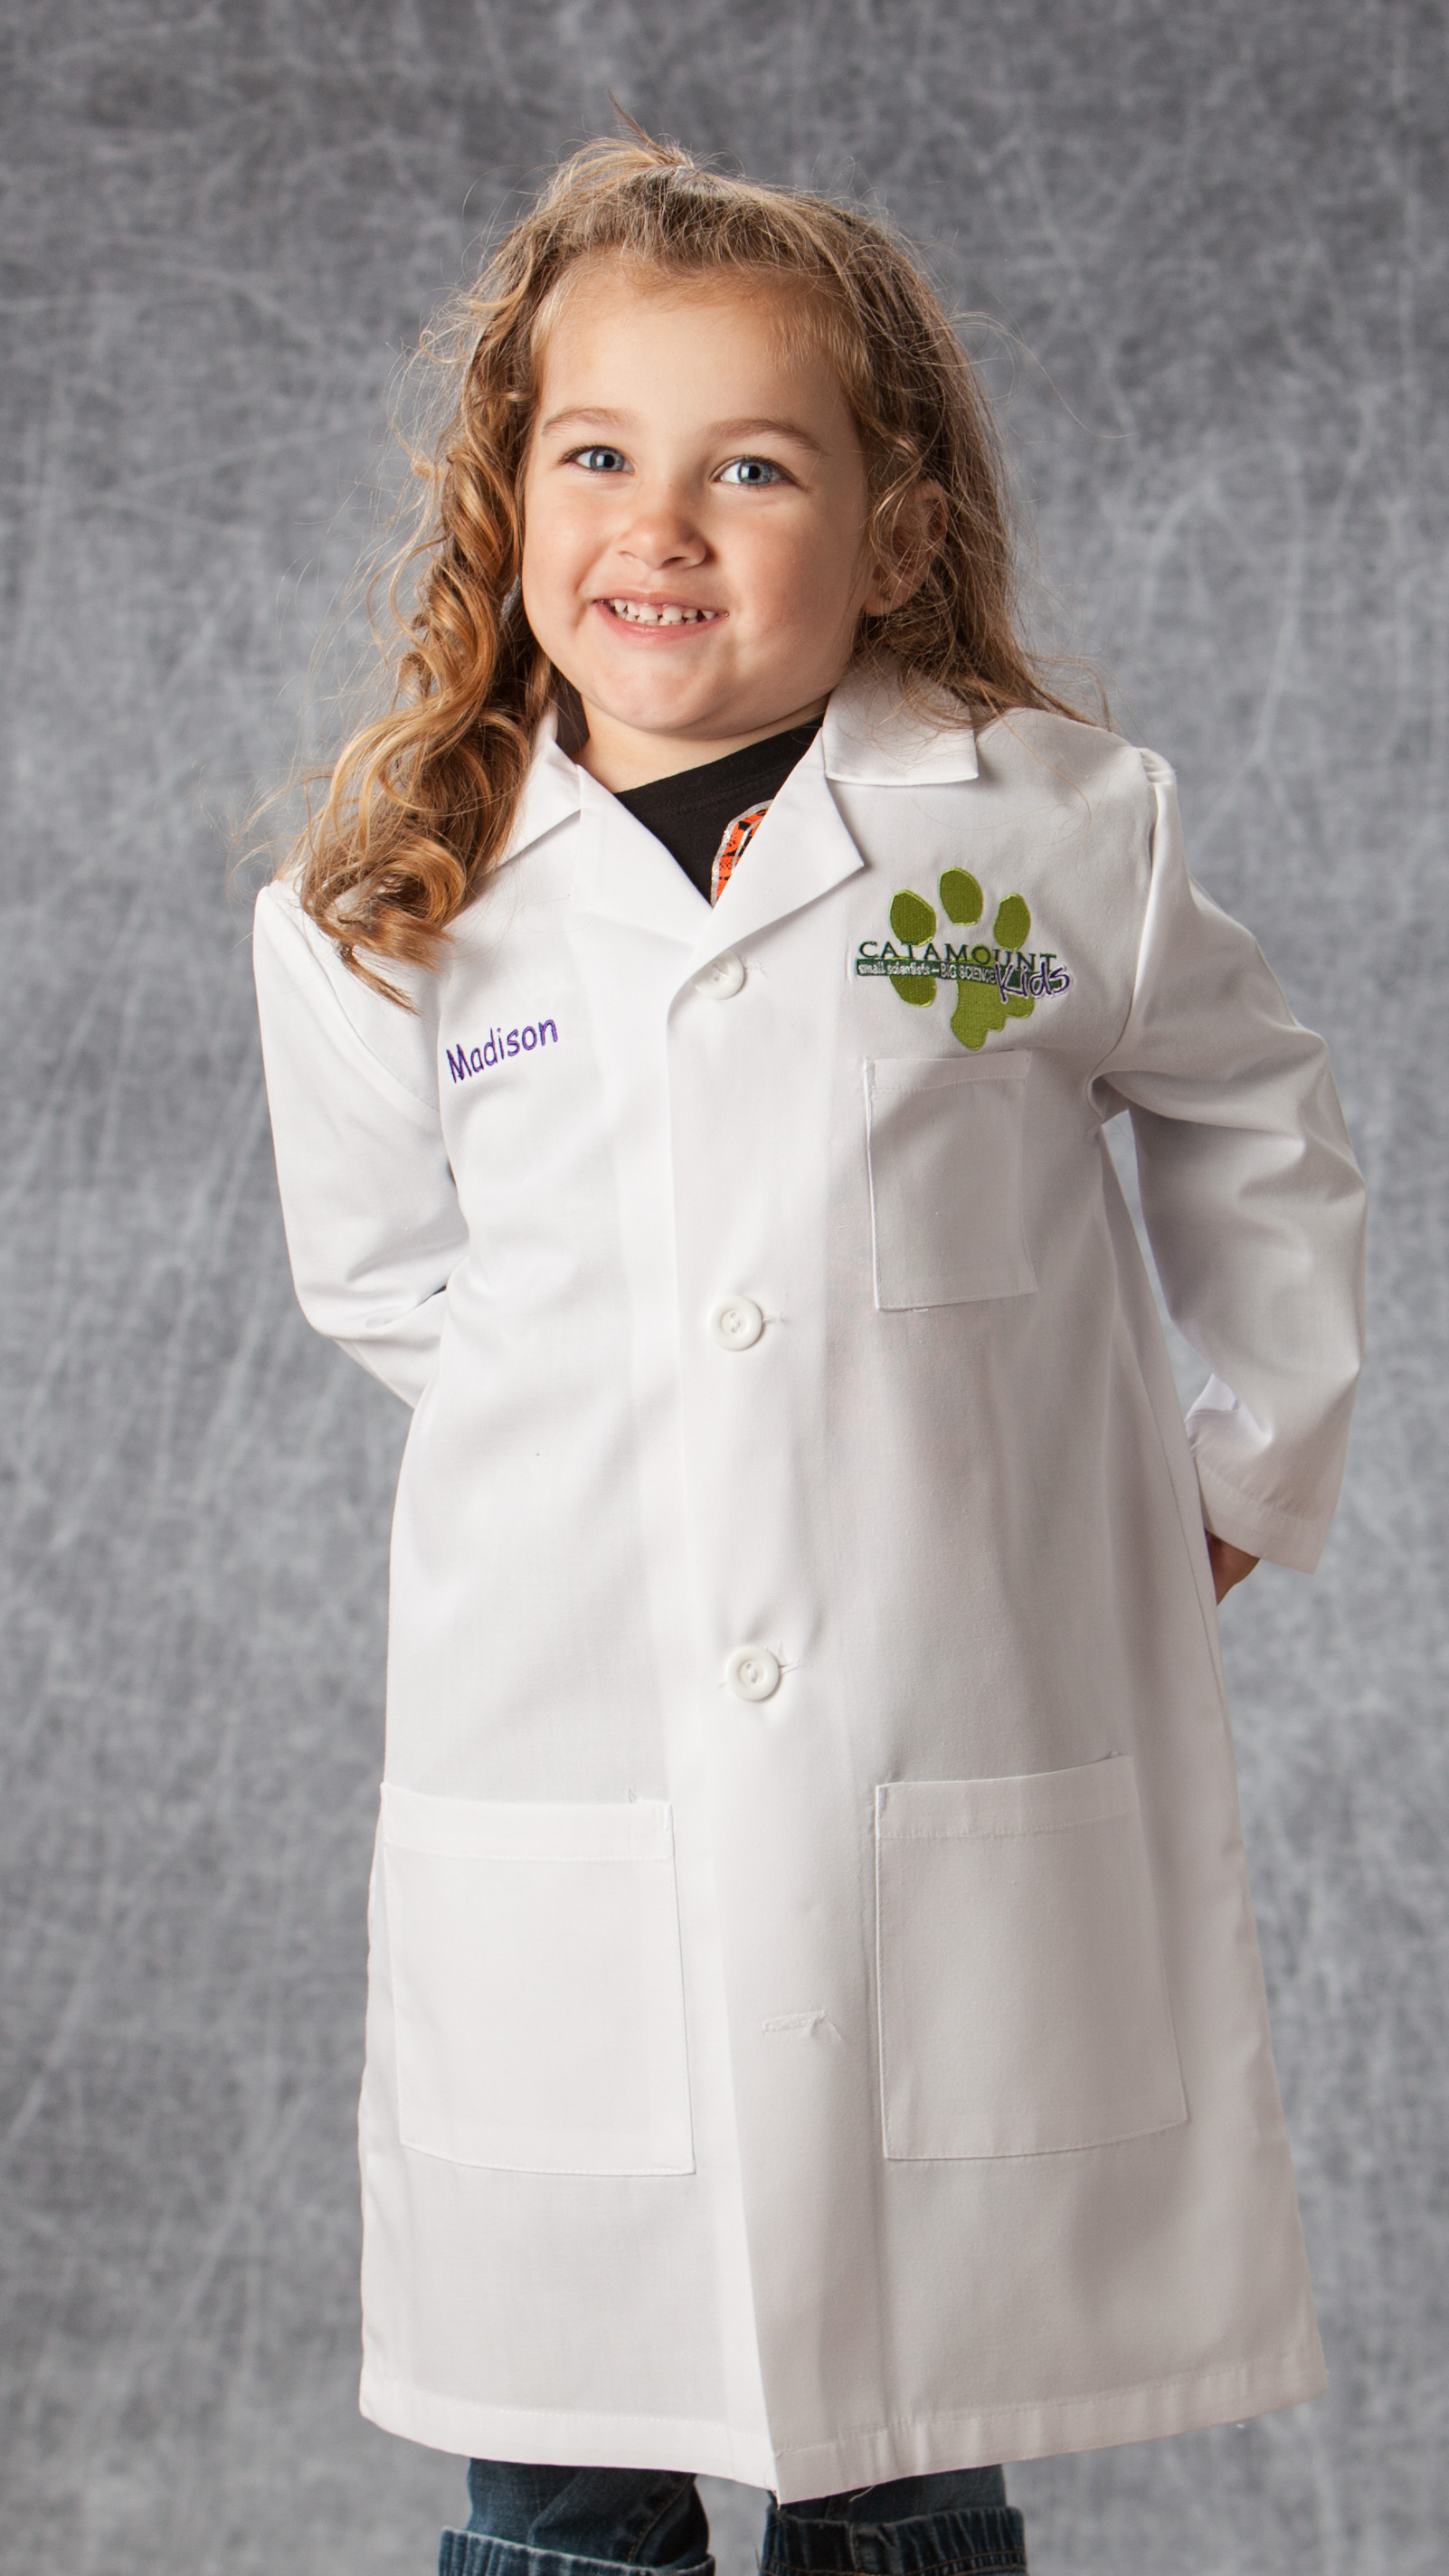 Catamount Kids Lab Coat Order Form